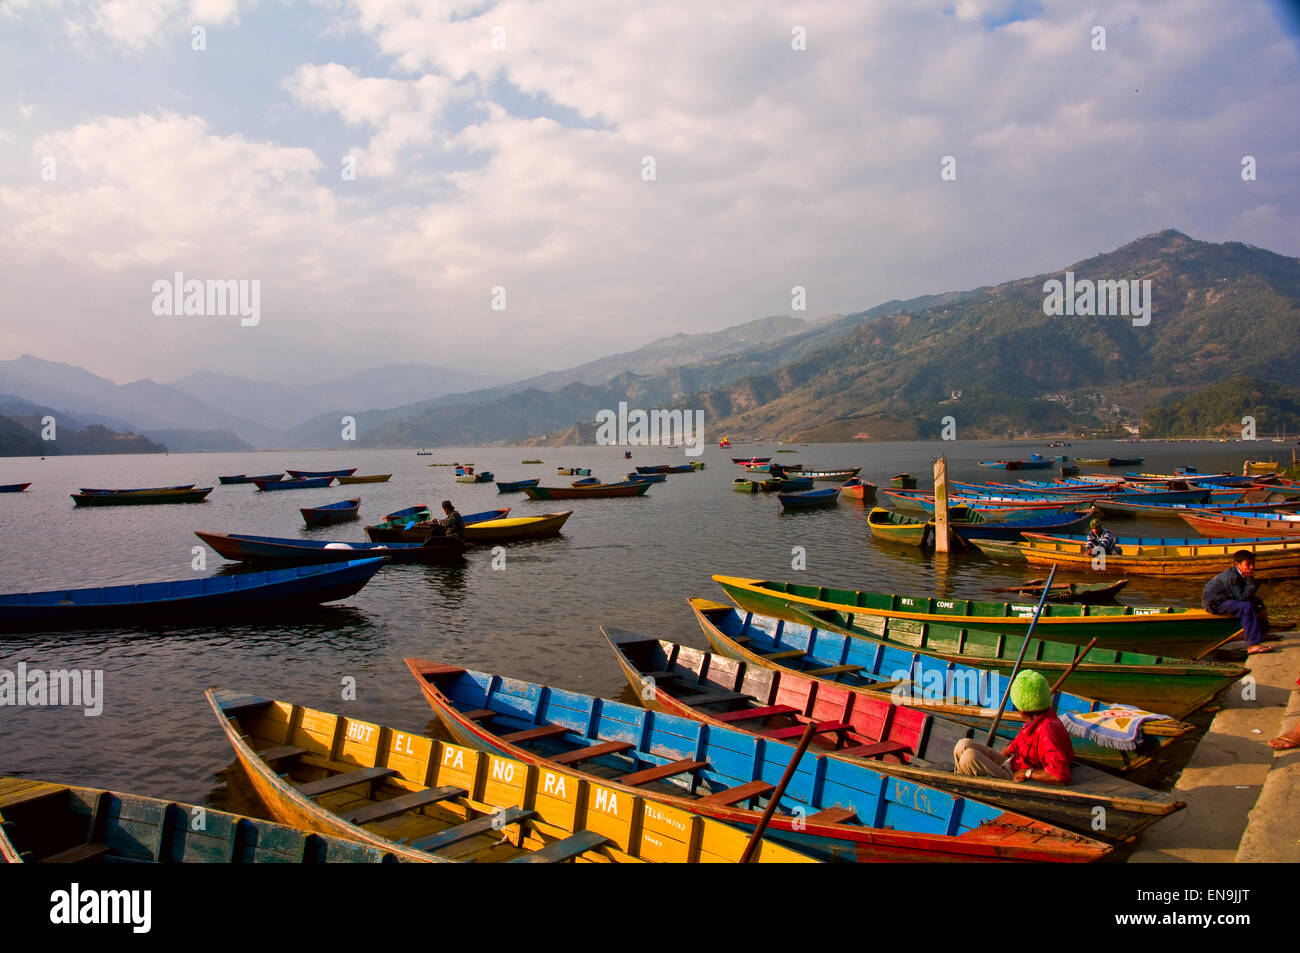 Pokhara is renowned for its setting rather than its historical or cultural endowments. Its peaceful lakeside location - Stock Image